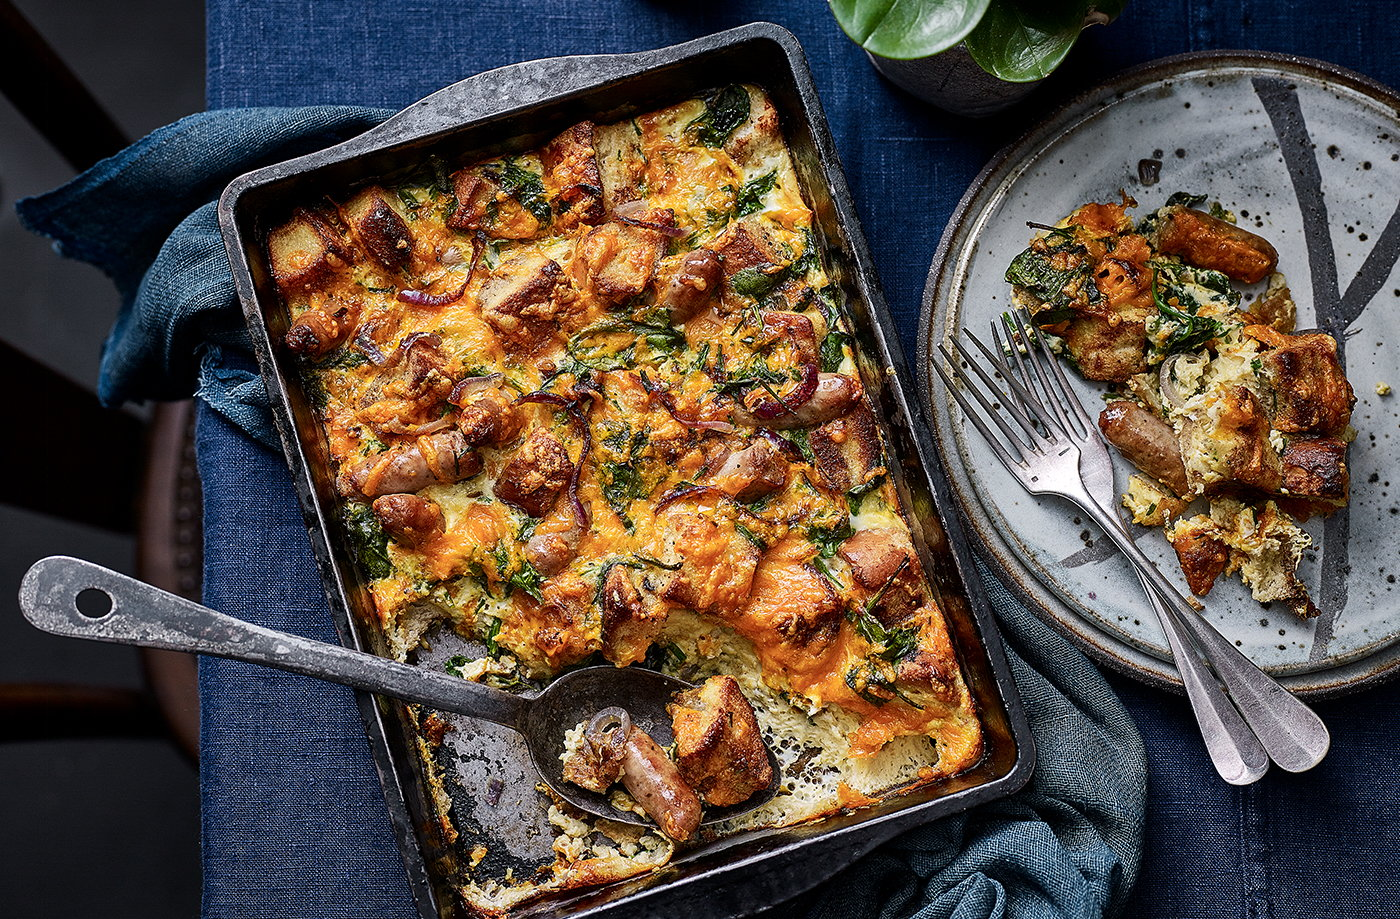 Sausage and spinach strata recipe